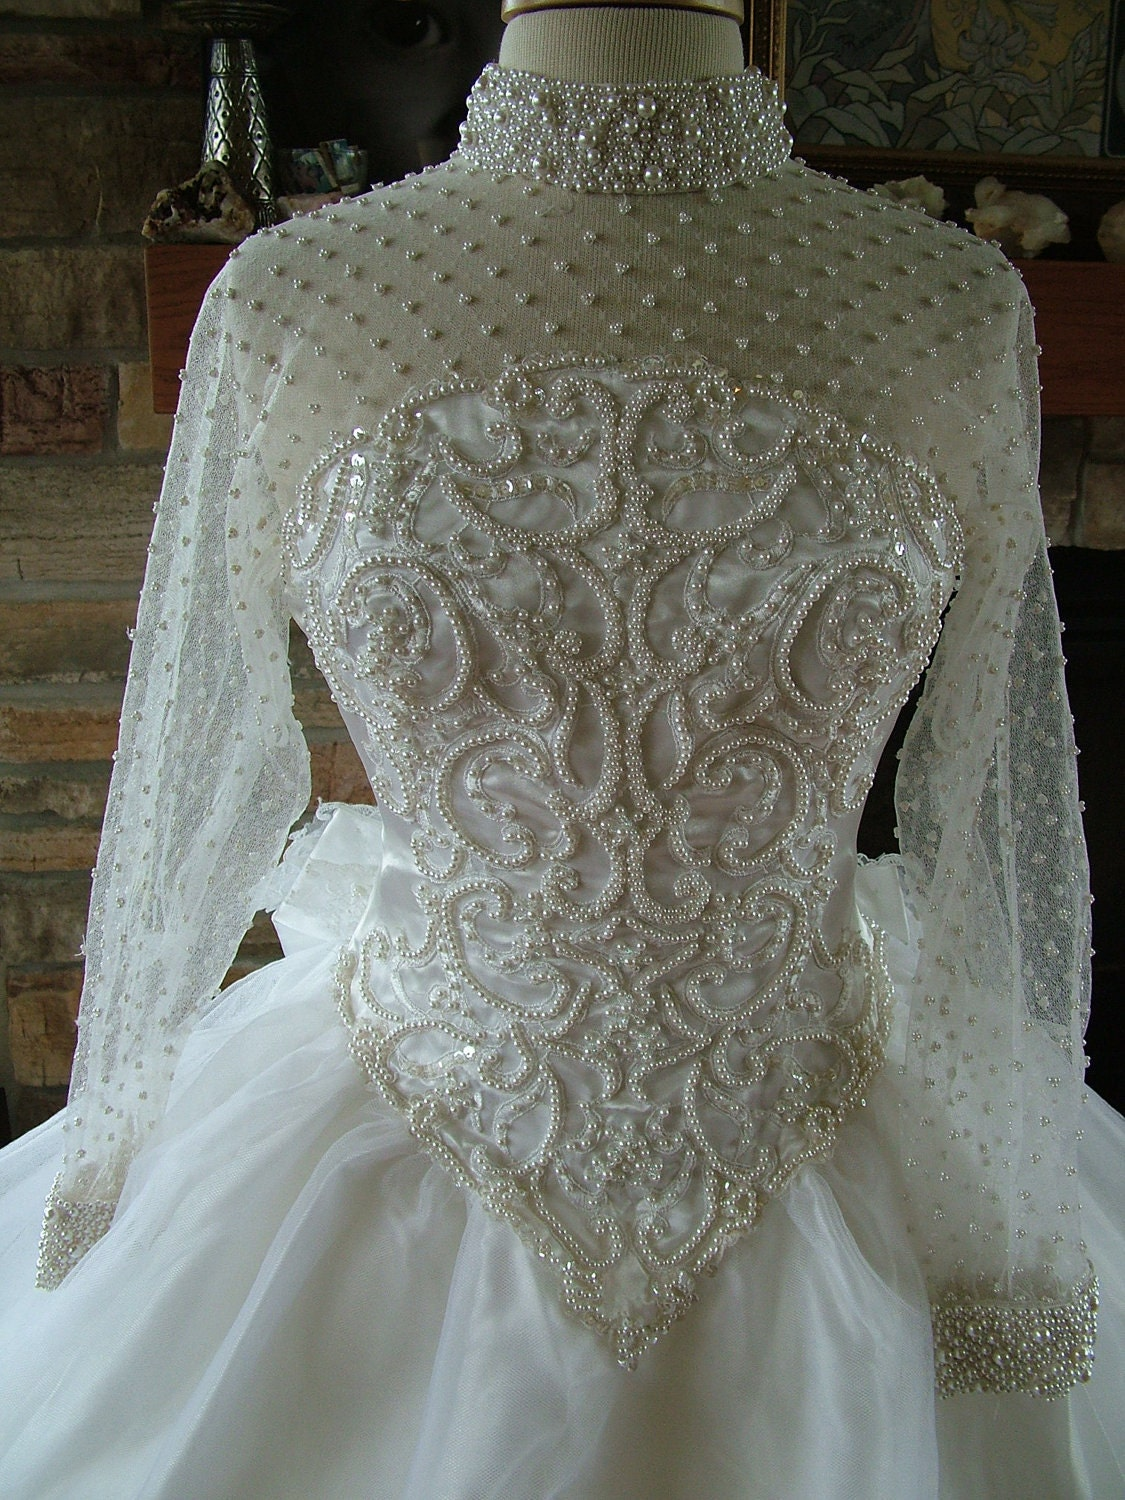 Wedding dress vintage pearl beaded bridal by for Wedding dress beading patterns